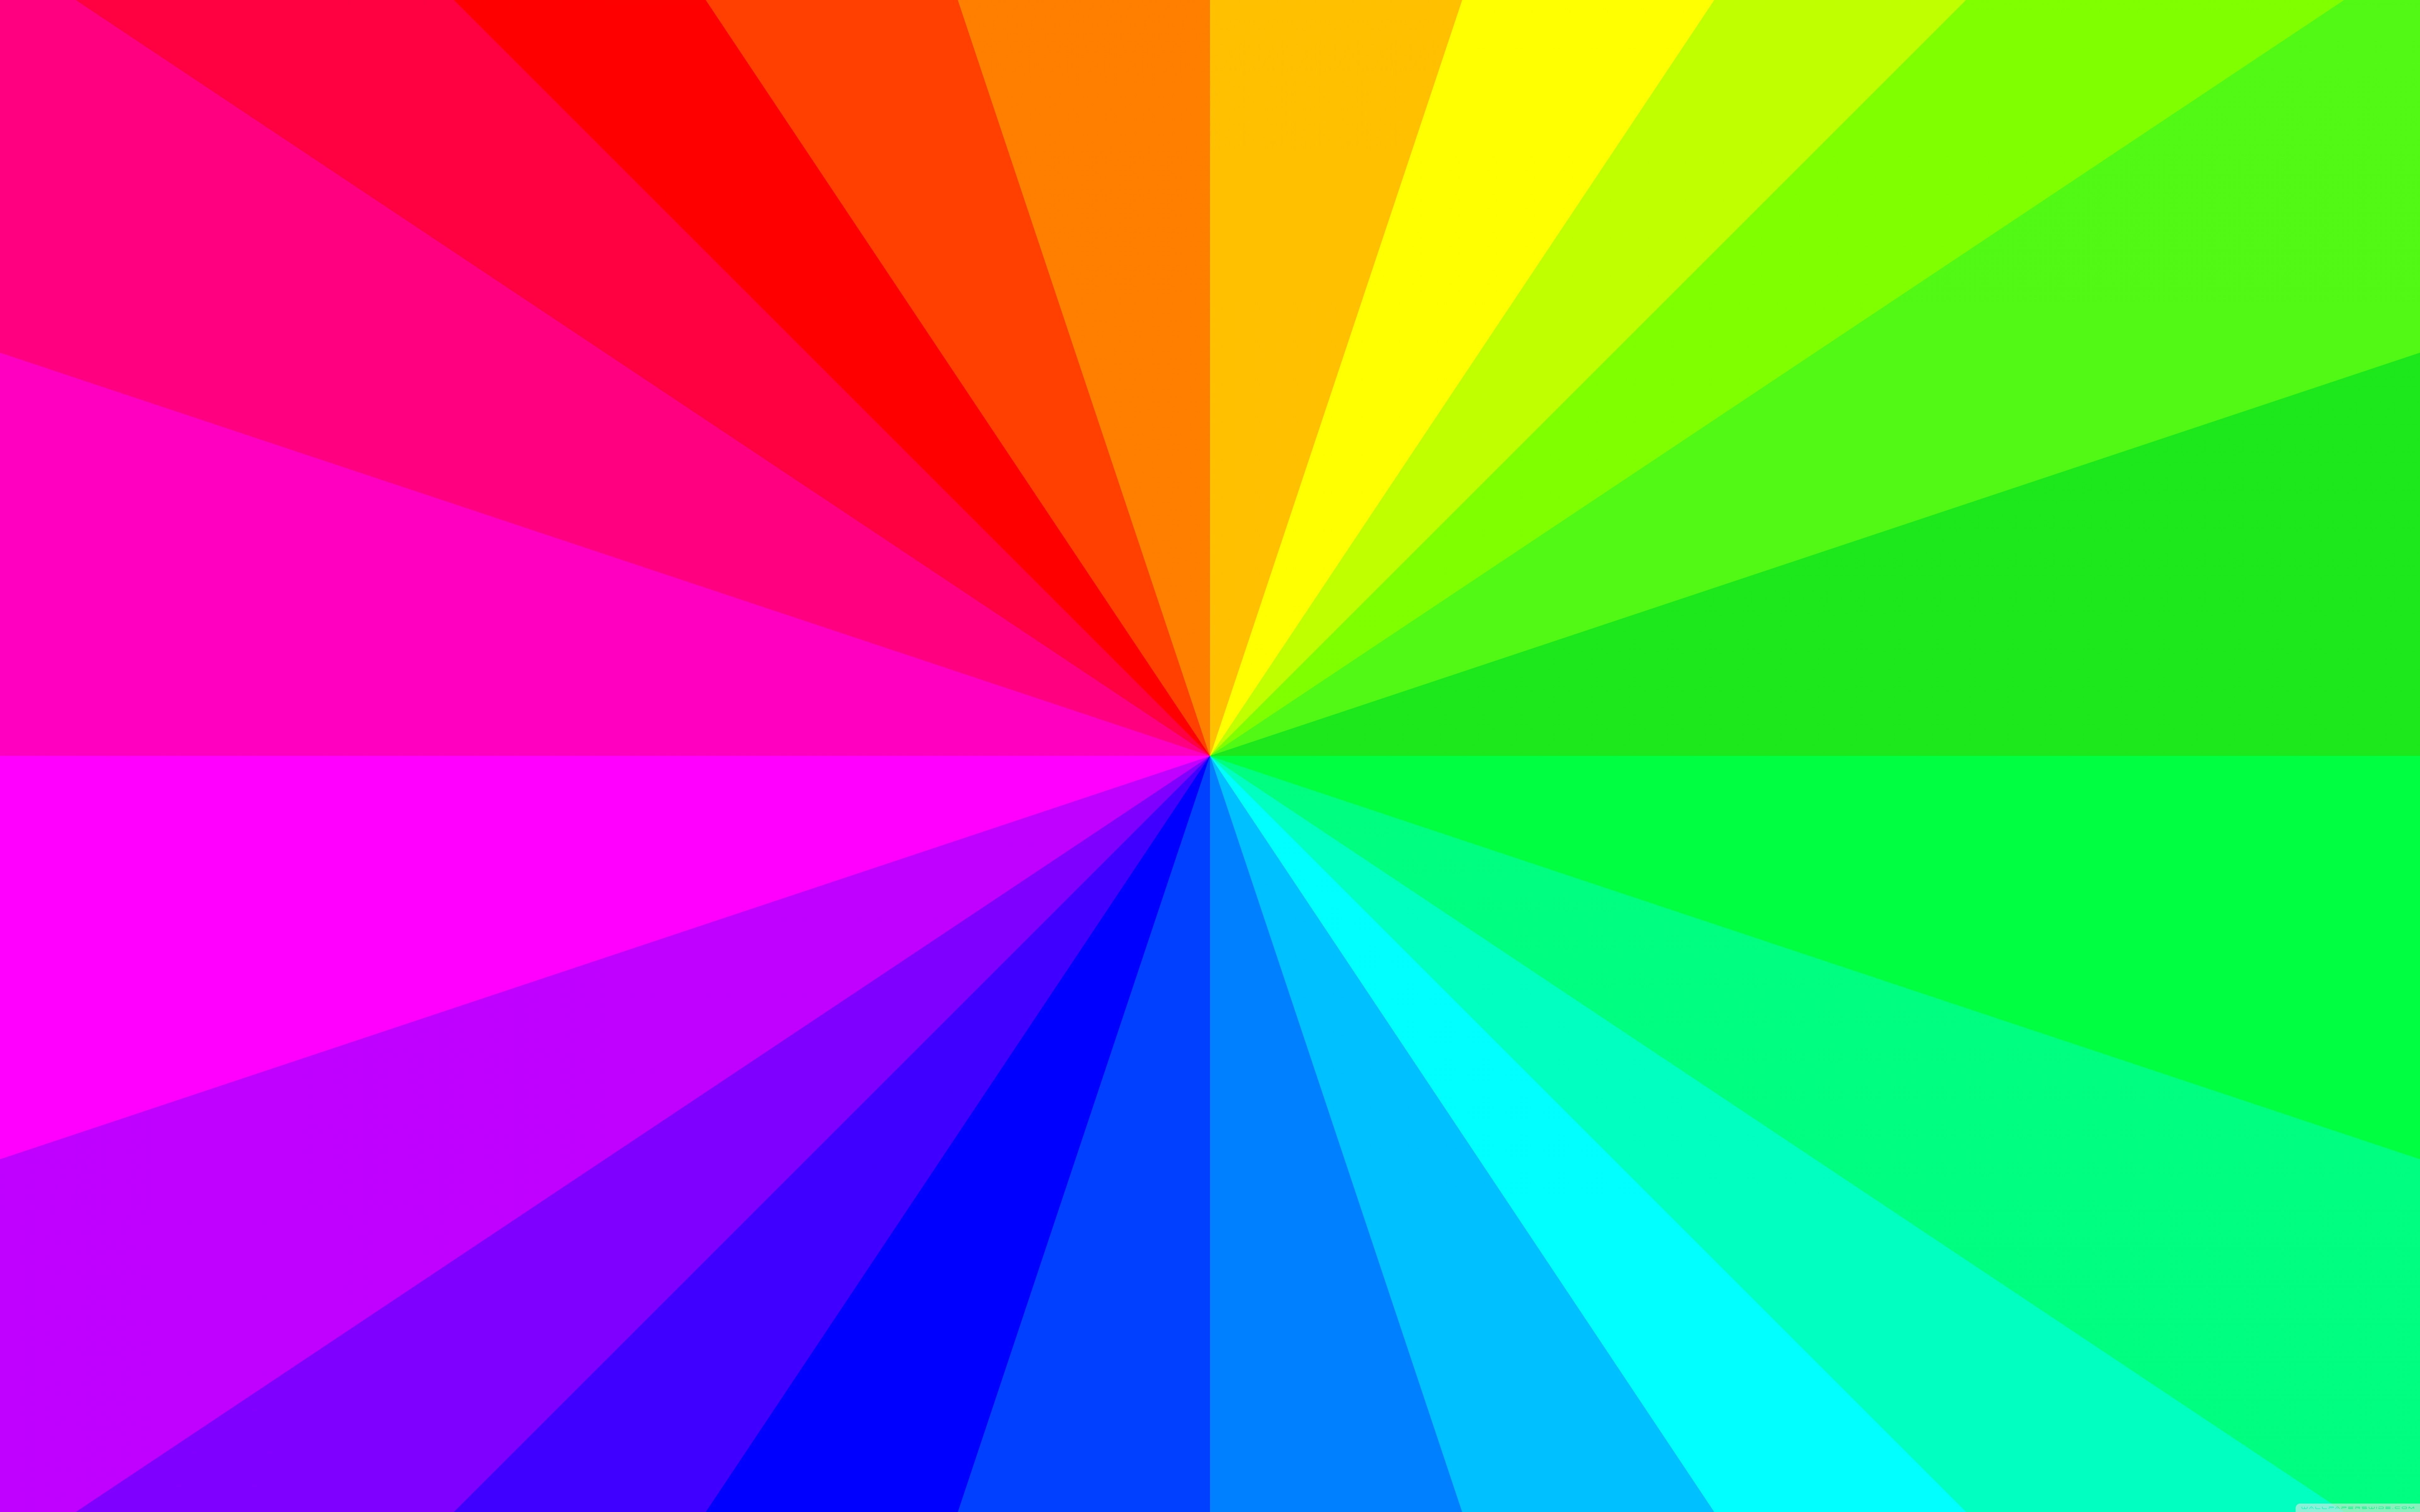 Rainbow Wallpapers Top Free Rainbow Backgrounds Wallpaperaccess